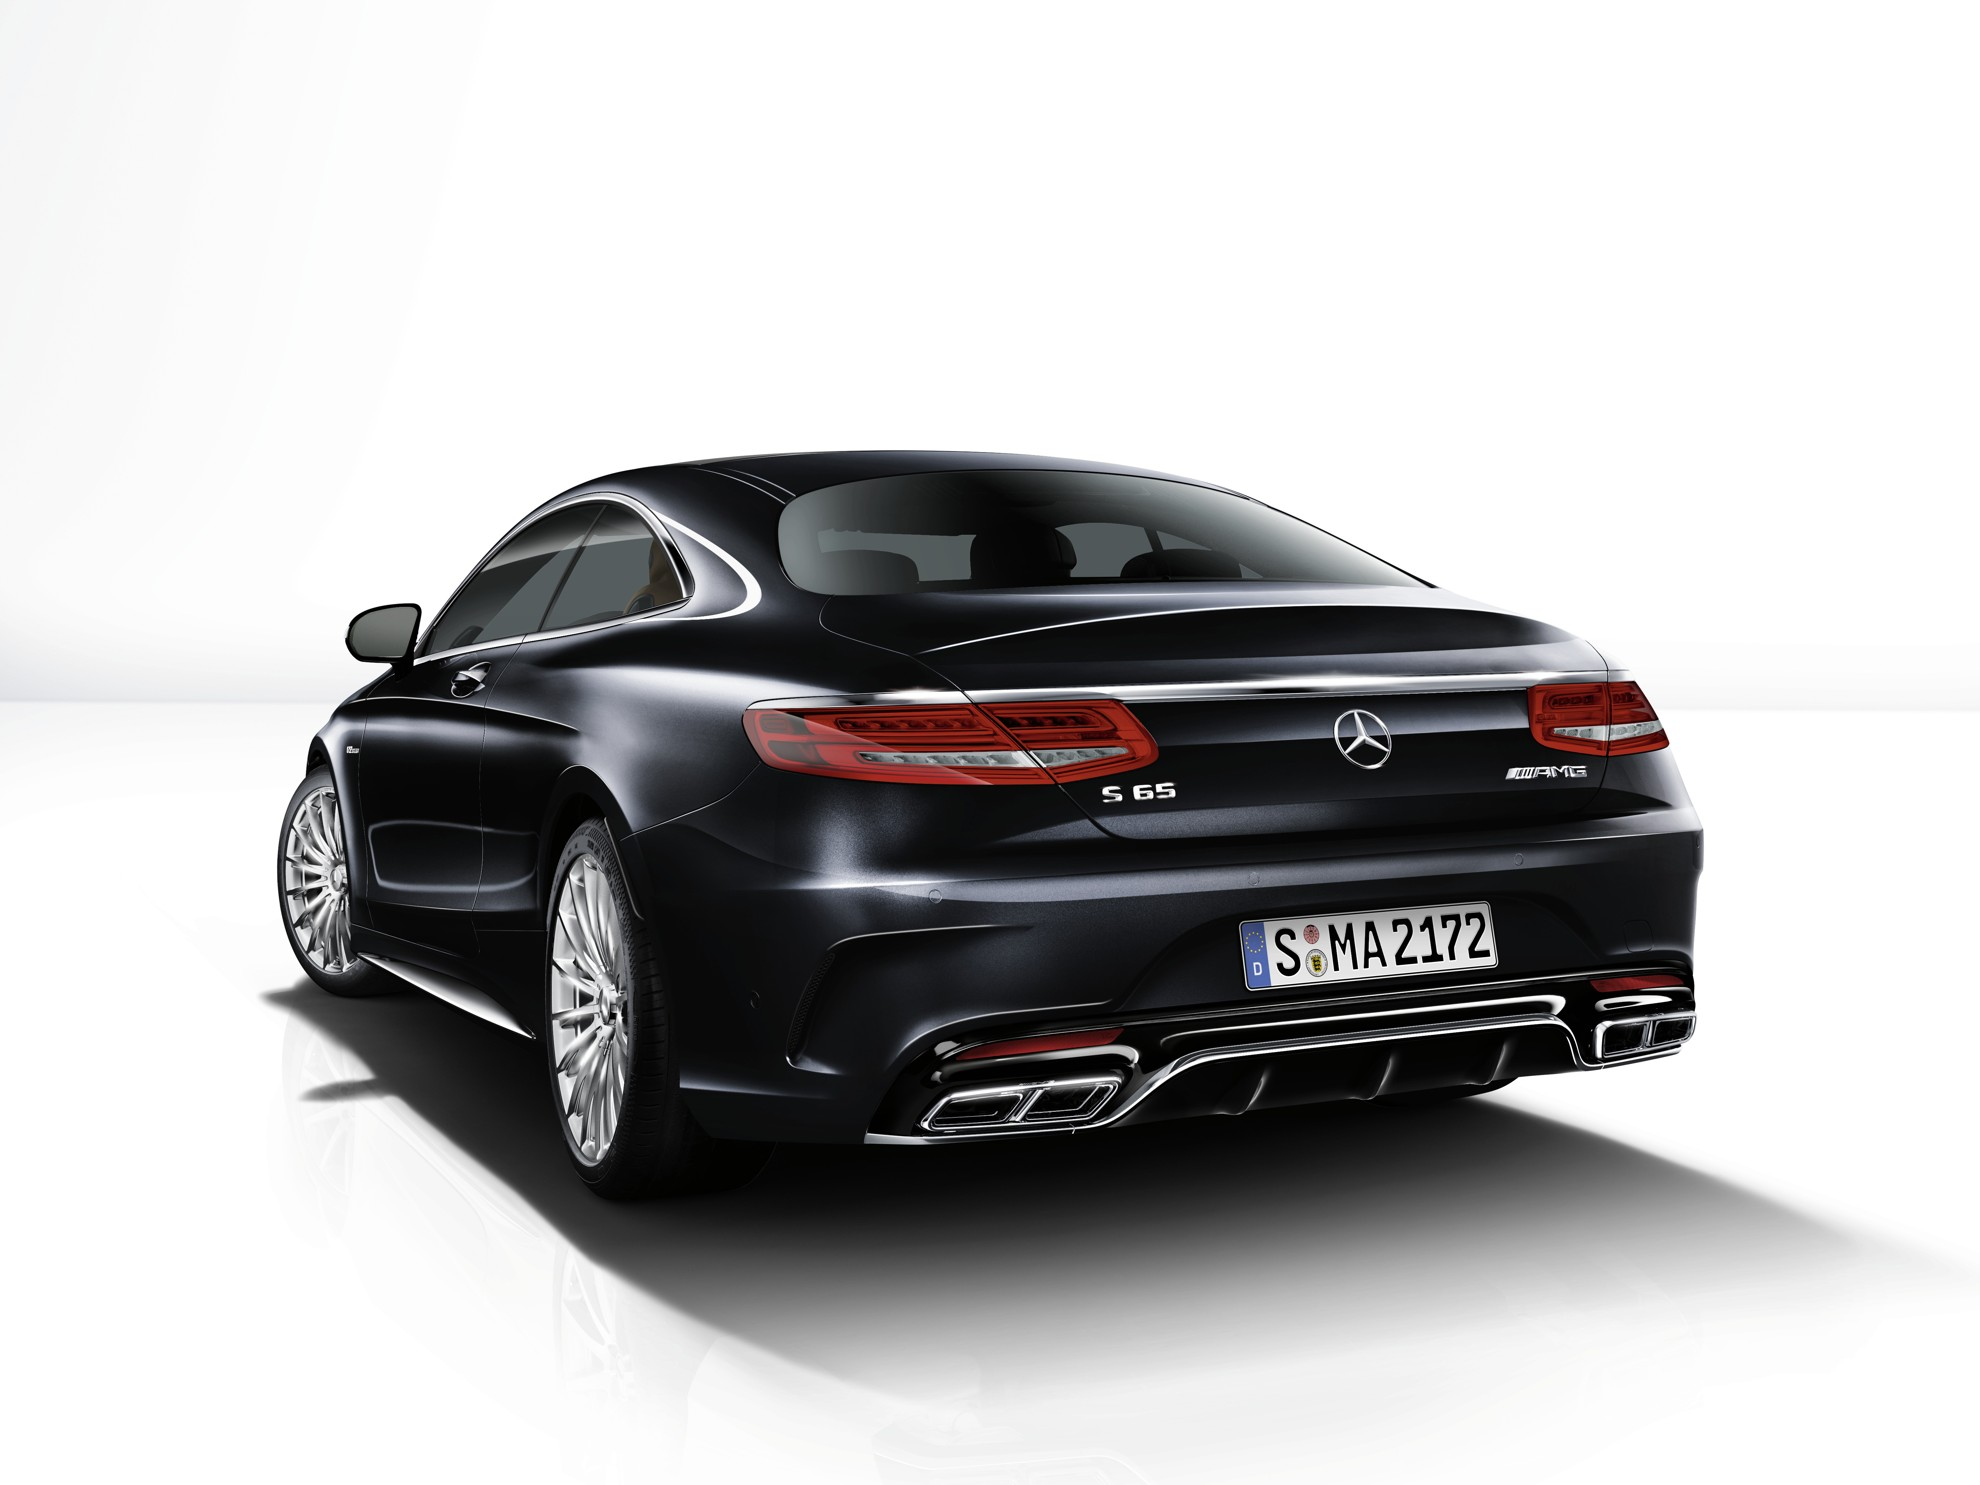 Mercedes_Benz_S_65_AMG_Coupe